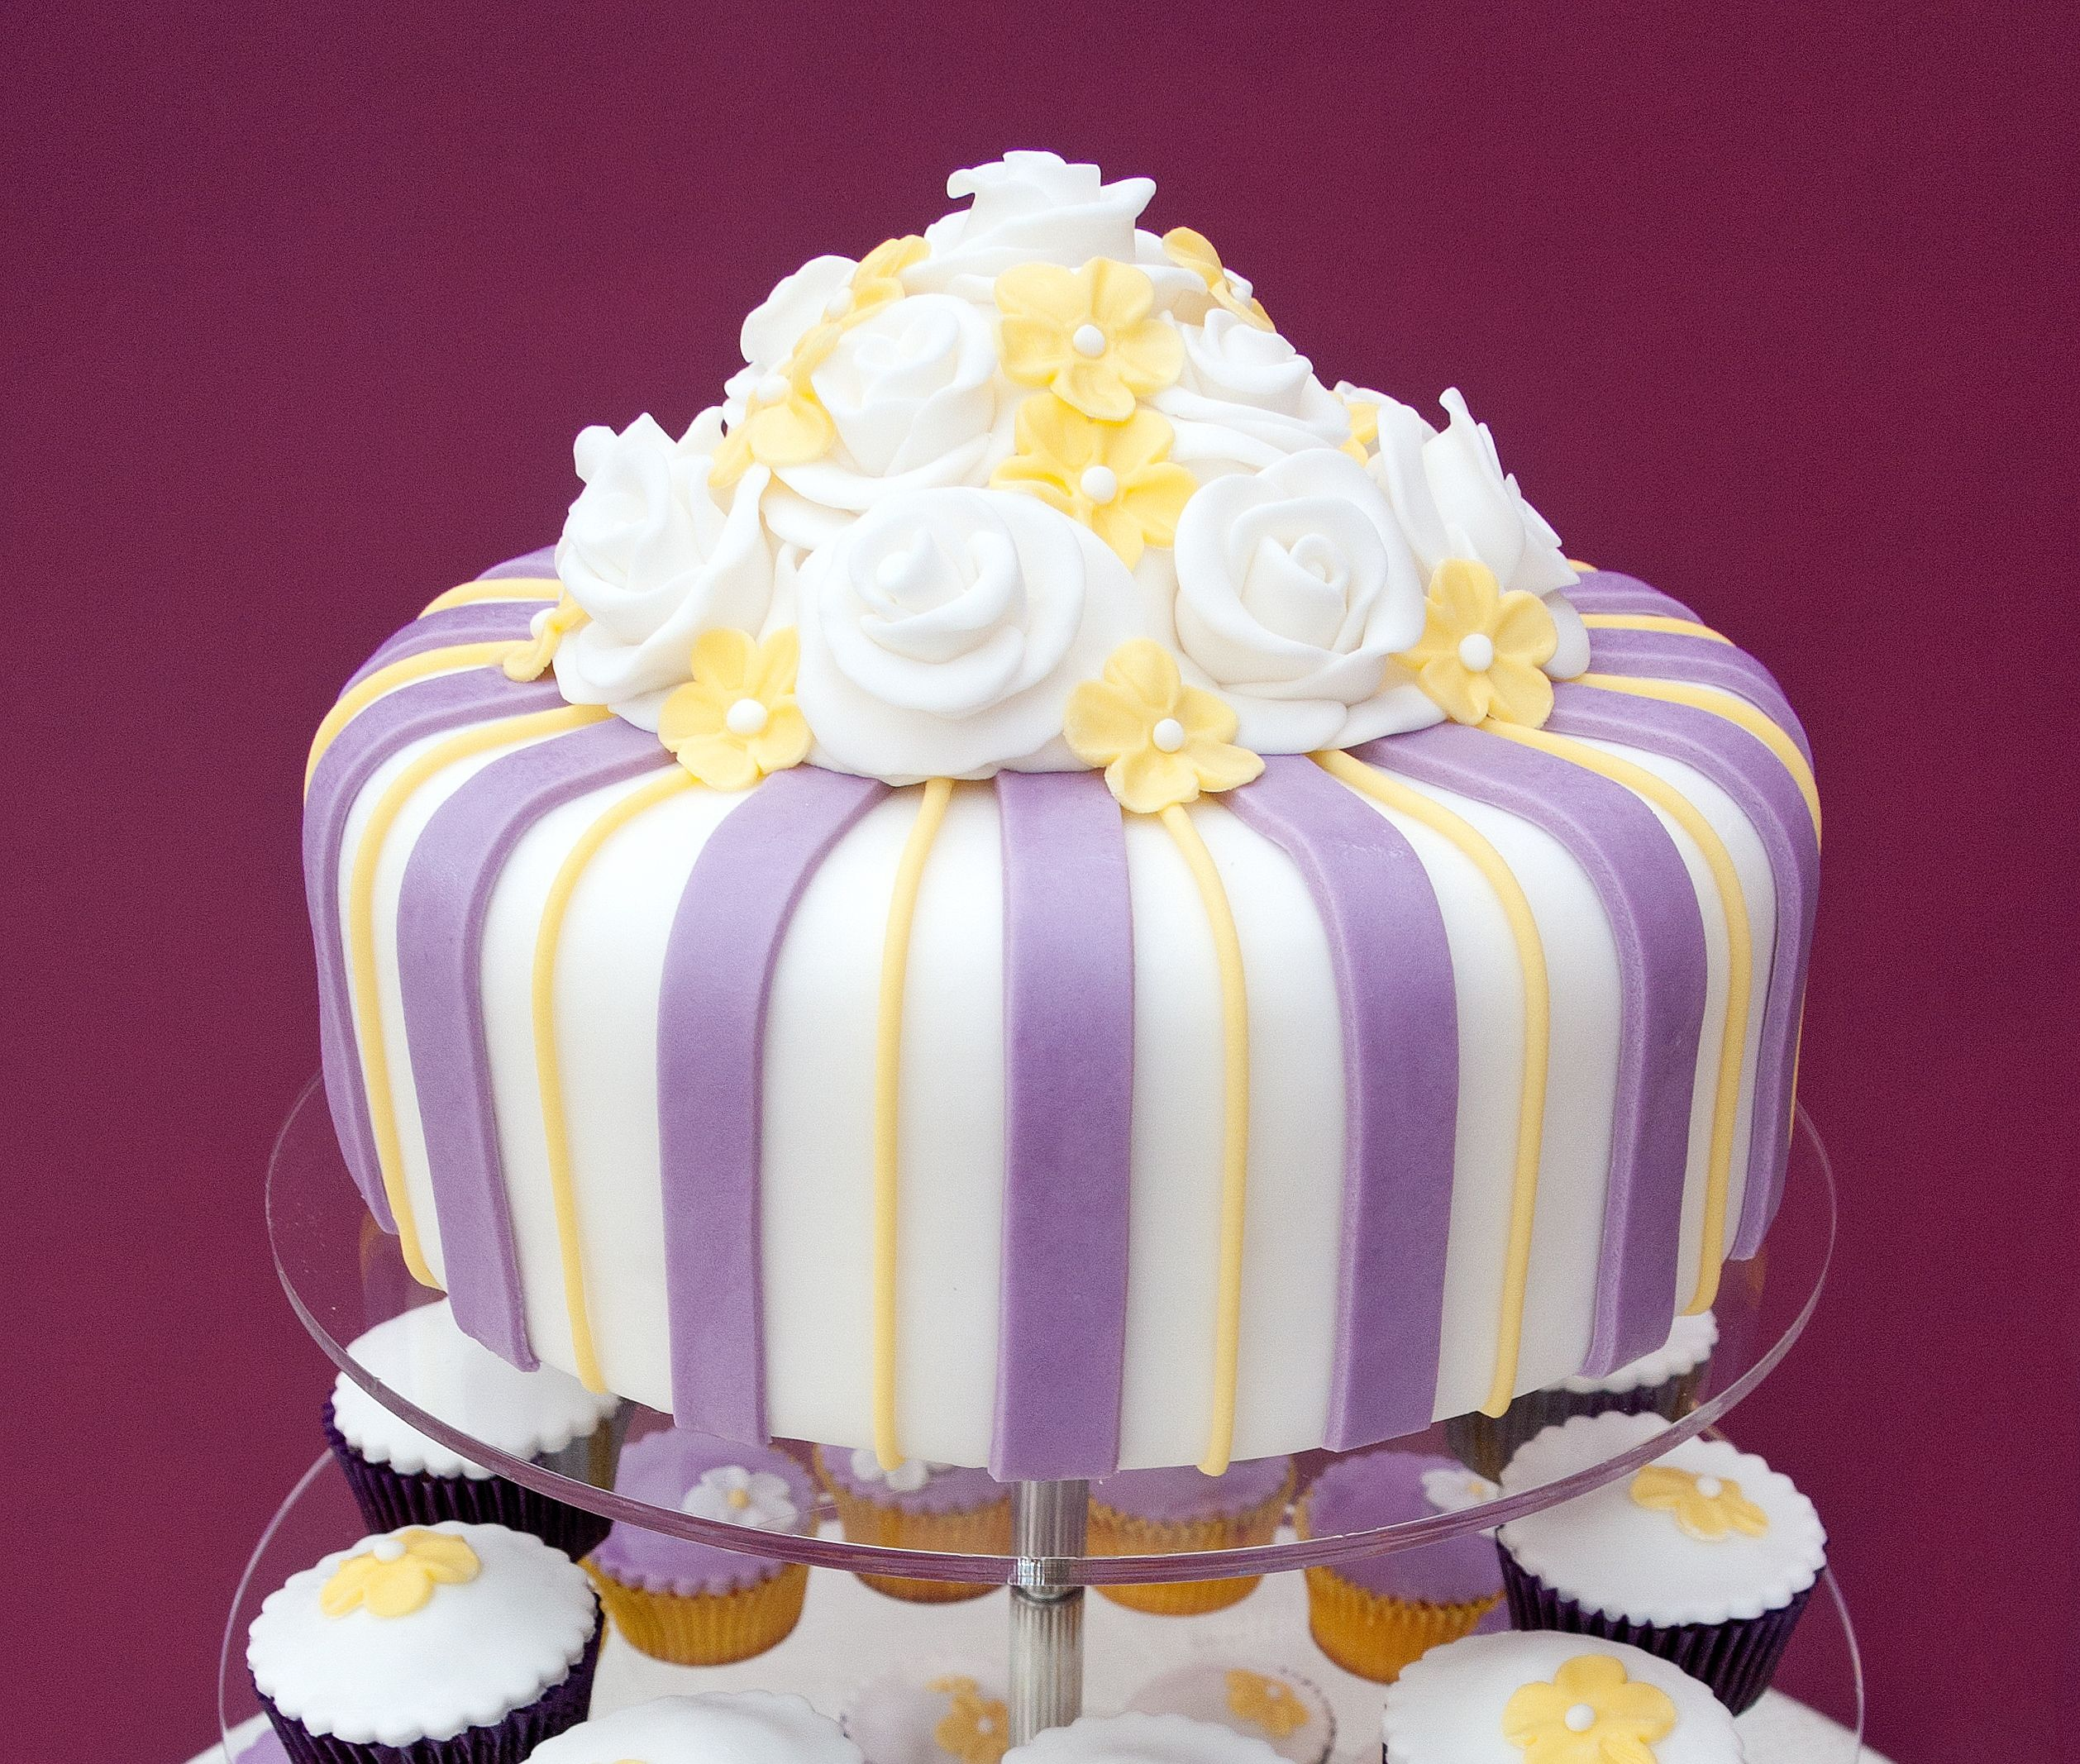 Lemon and lilac wedding cake with white roses